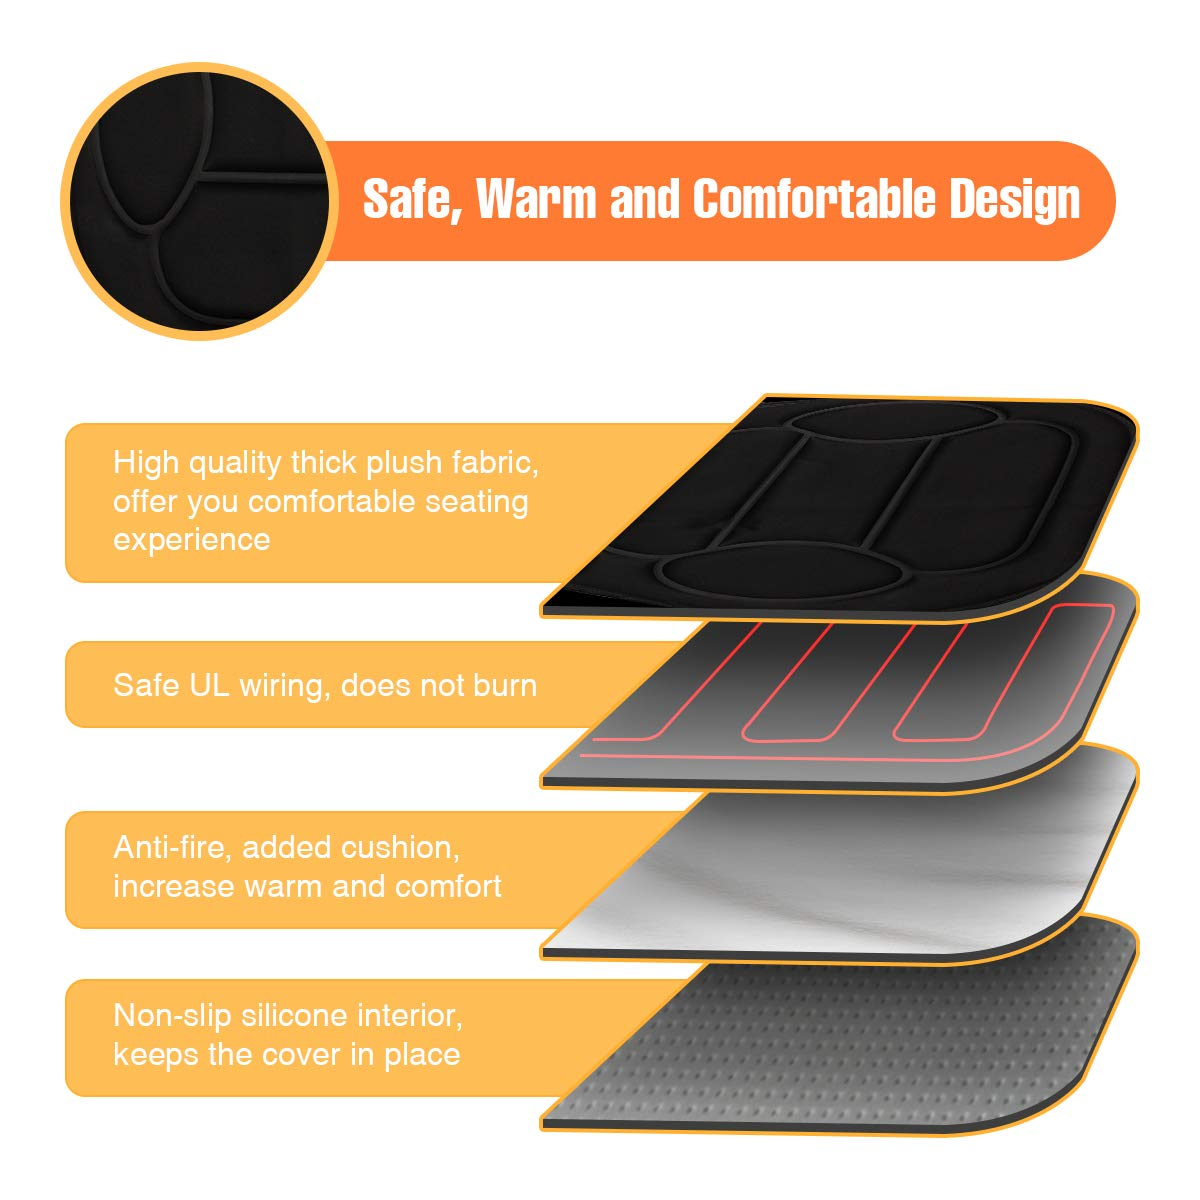 Heated Car Seat Black Tvird 12V Car Heated Seat Cover Heated Pad Cushion Winter Warmer Cover